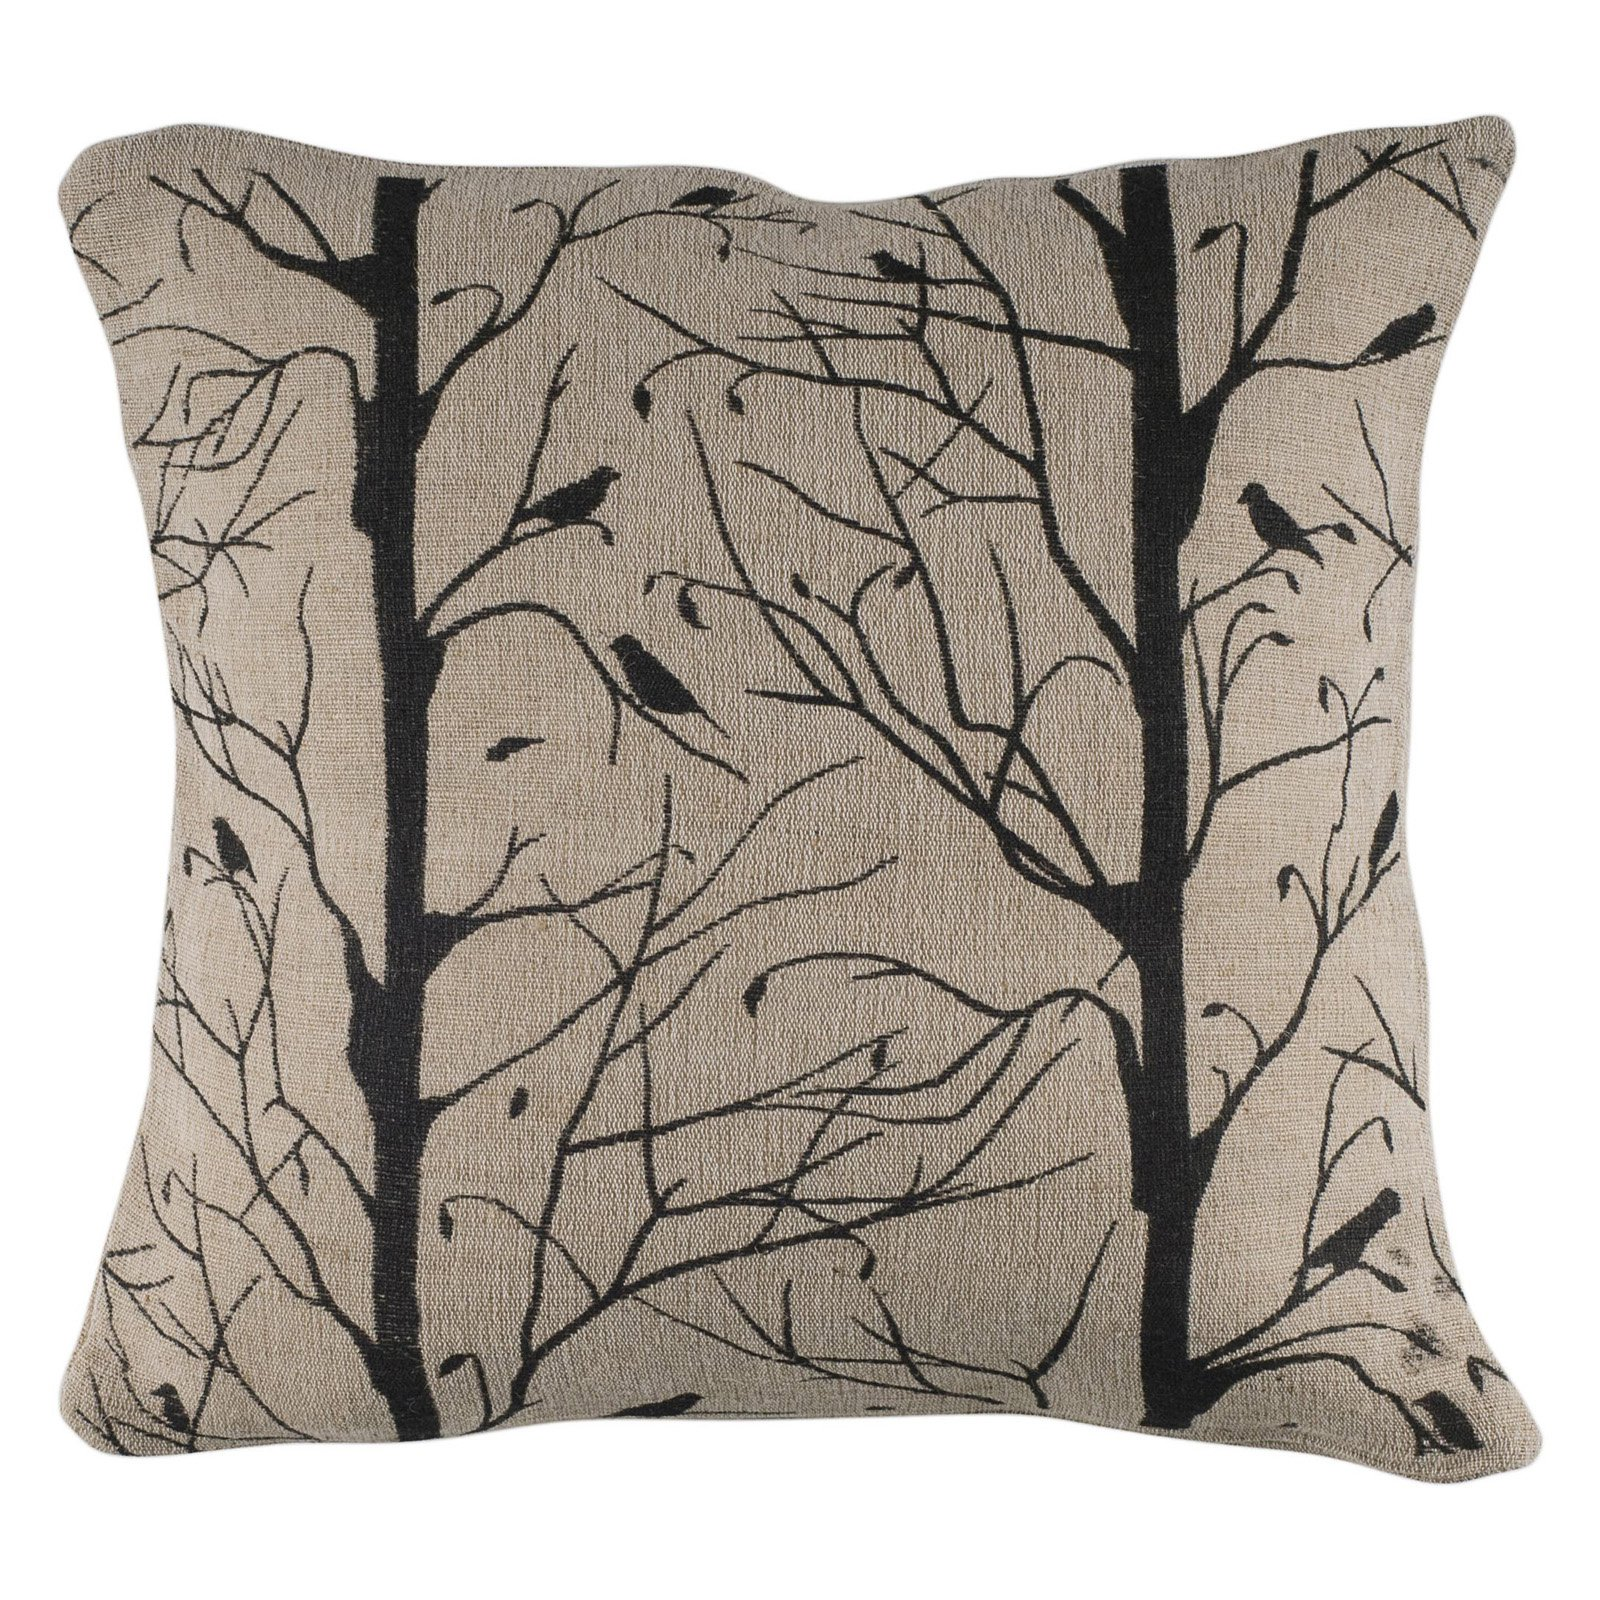 "Rizzy Home Trees With Birds Poly Filled Decorative Throw Pillow, 18"" x 18"", Black"